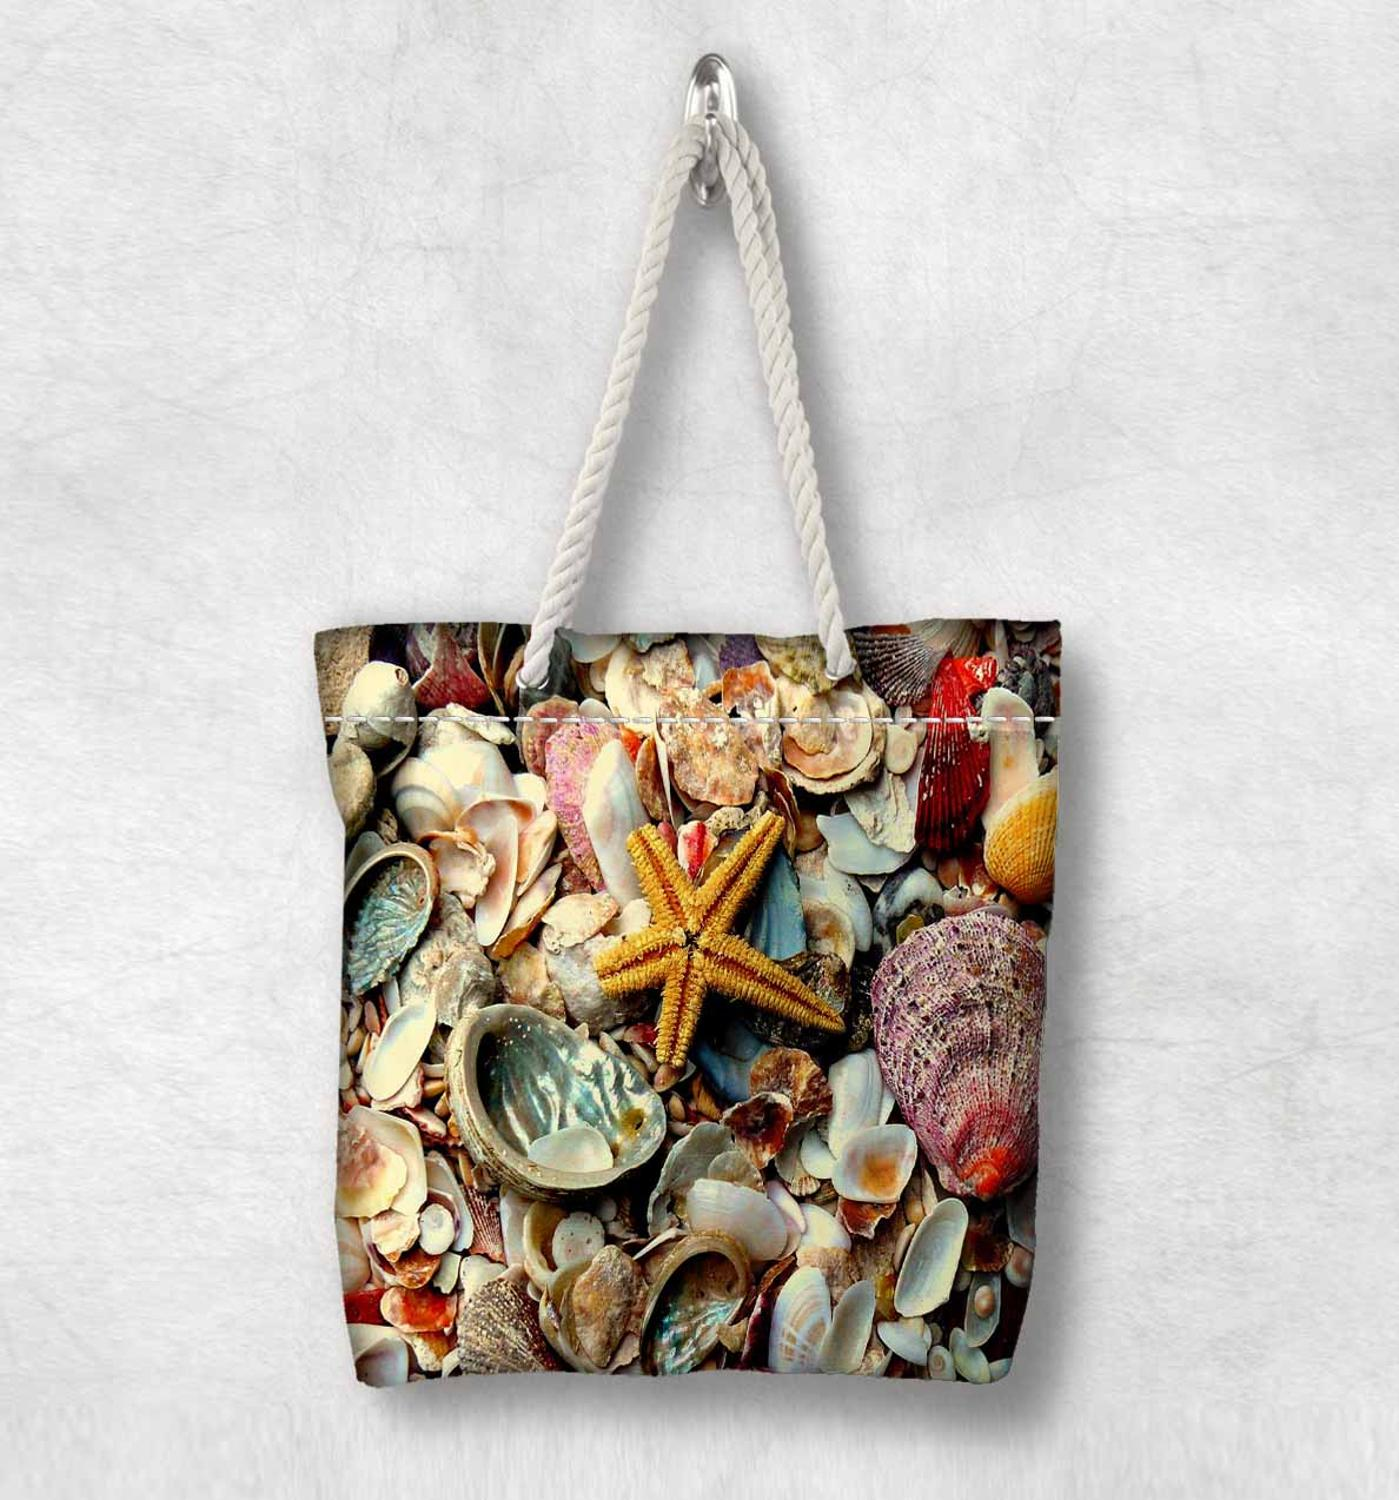 Else Yellow Beige Sea Stars Shells New Fashion White Rope Handle Canvas Bag Cotton Canvas Zippered Tote Bag Shoulder Bag